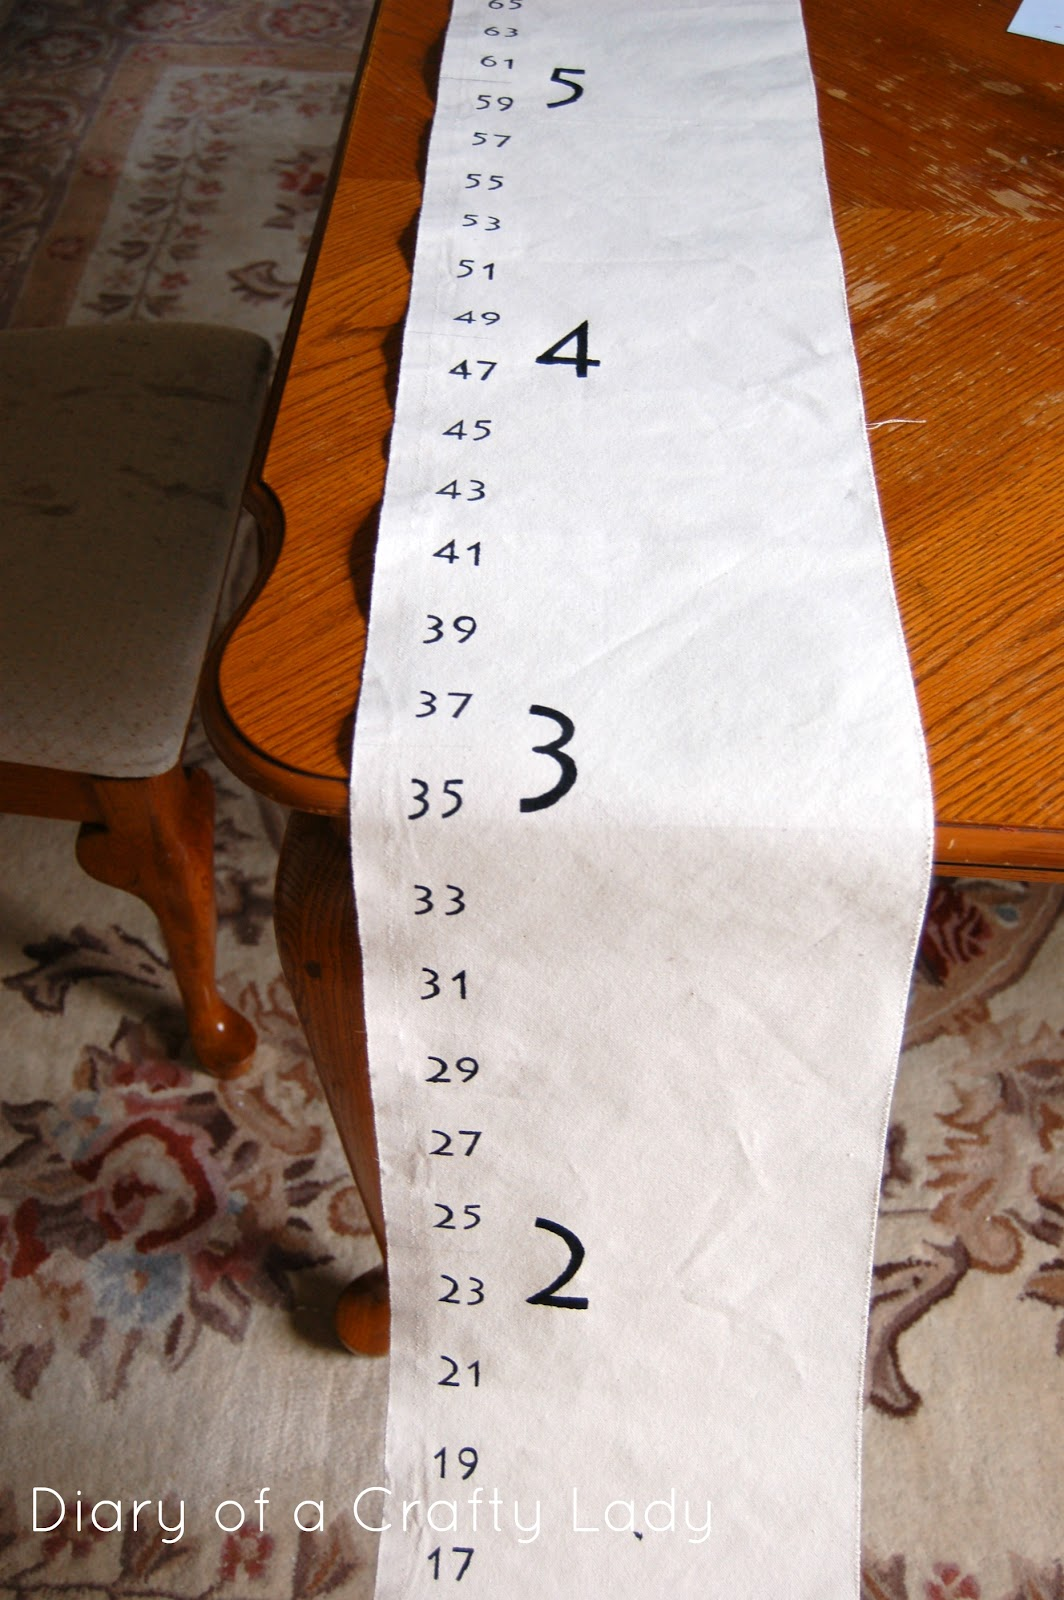 Diary of a crafty lady diy canvas growth chart the lines see below were made with a ruler and a paintbrush that i ran along the edge of the ruler the odd numbers had 5 long lines the even number geenschuldenfo Images